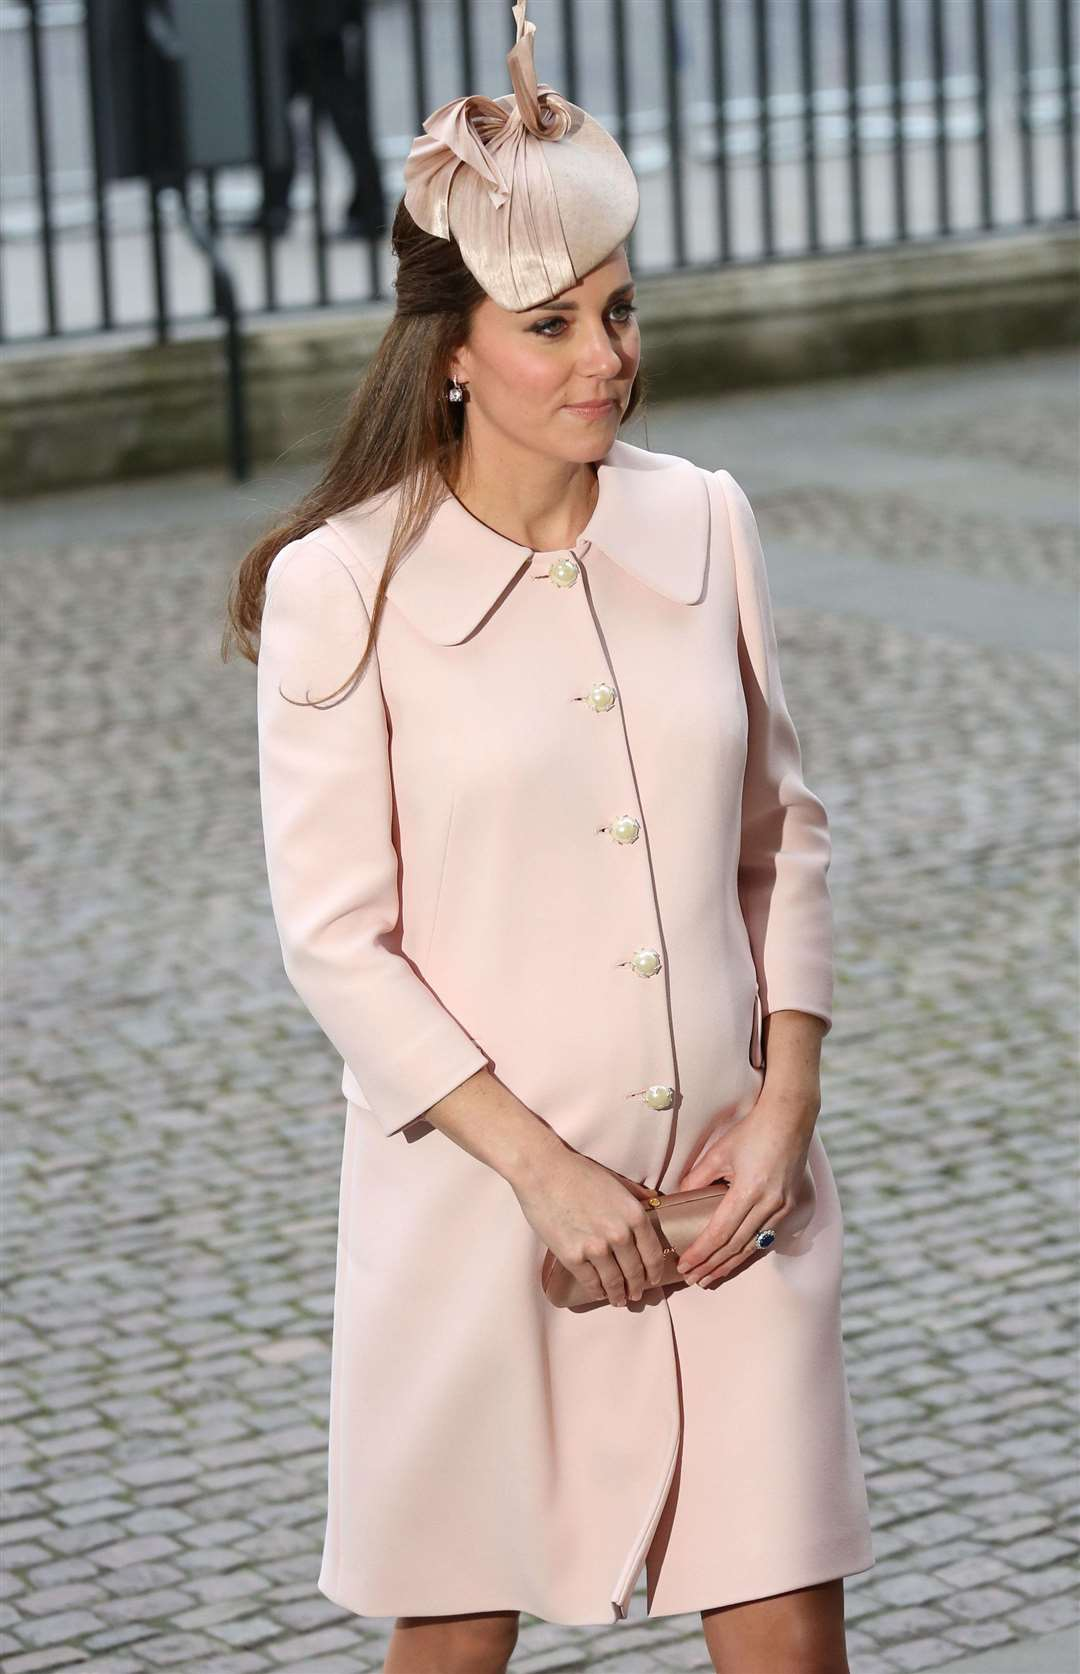 The Duchess of Cambridge has mastered maternity dressing